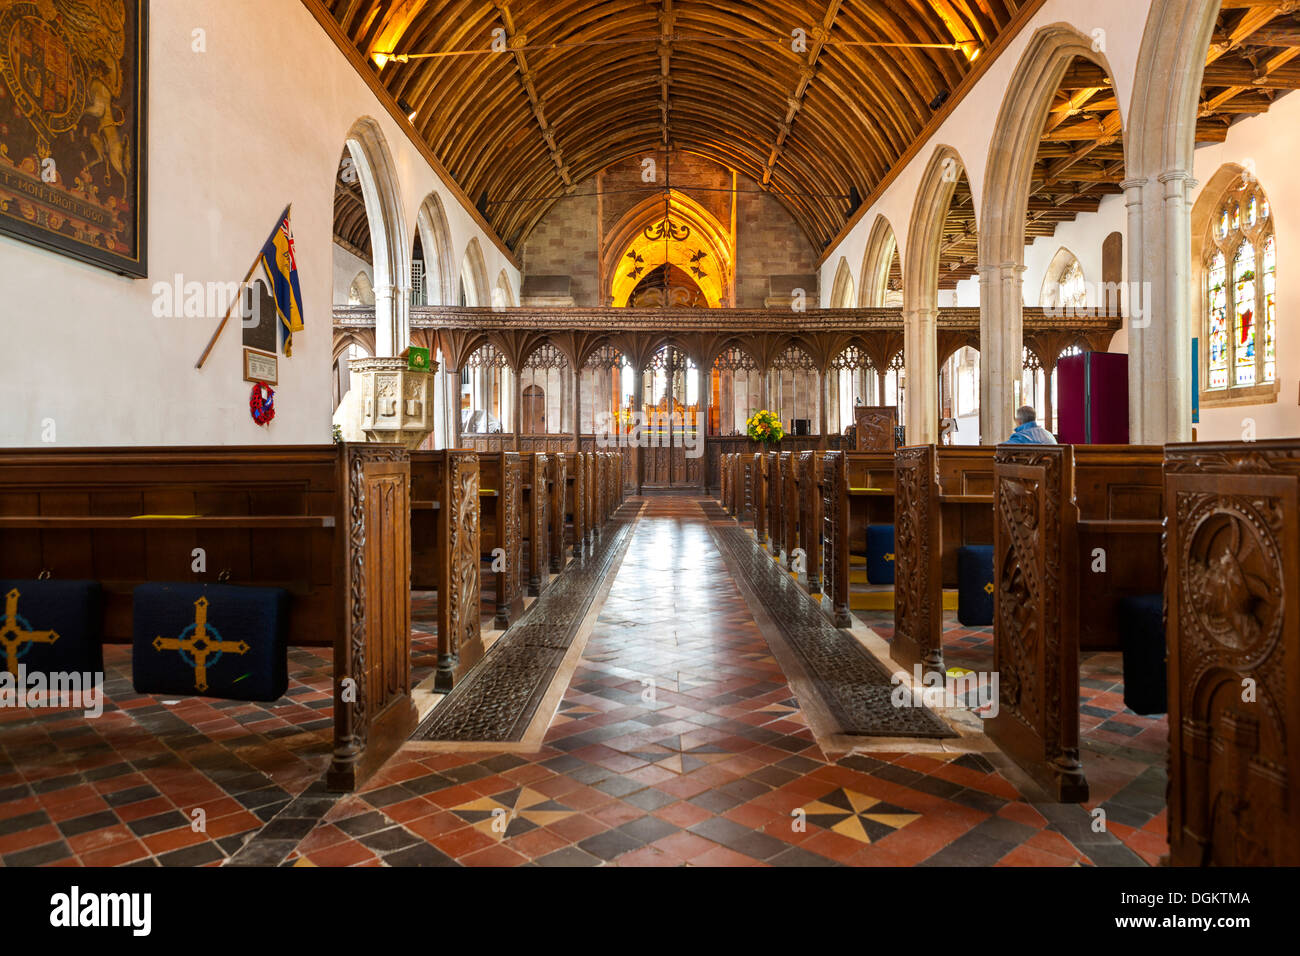 Interior of St George's Priory church in Dunster. - Stock Image